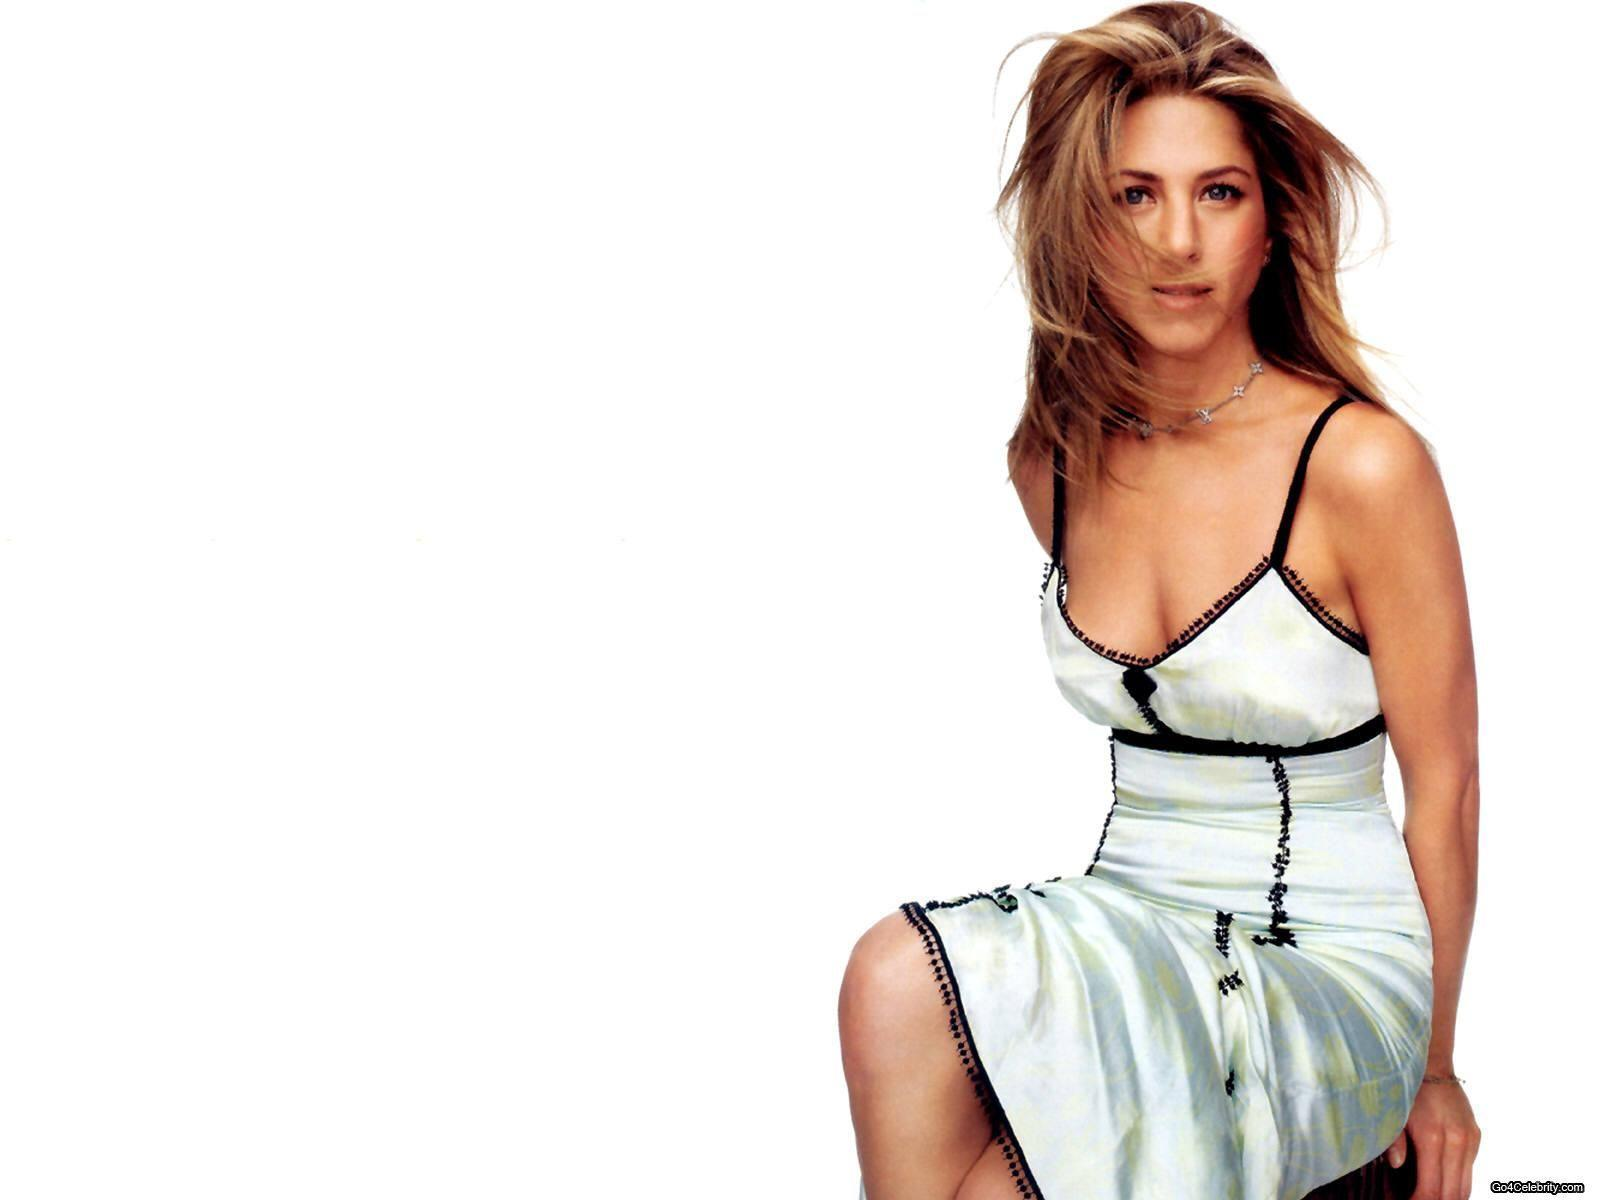 jennifer aniston wallpapers: Jennifer Aniston Wallpapers HD